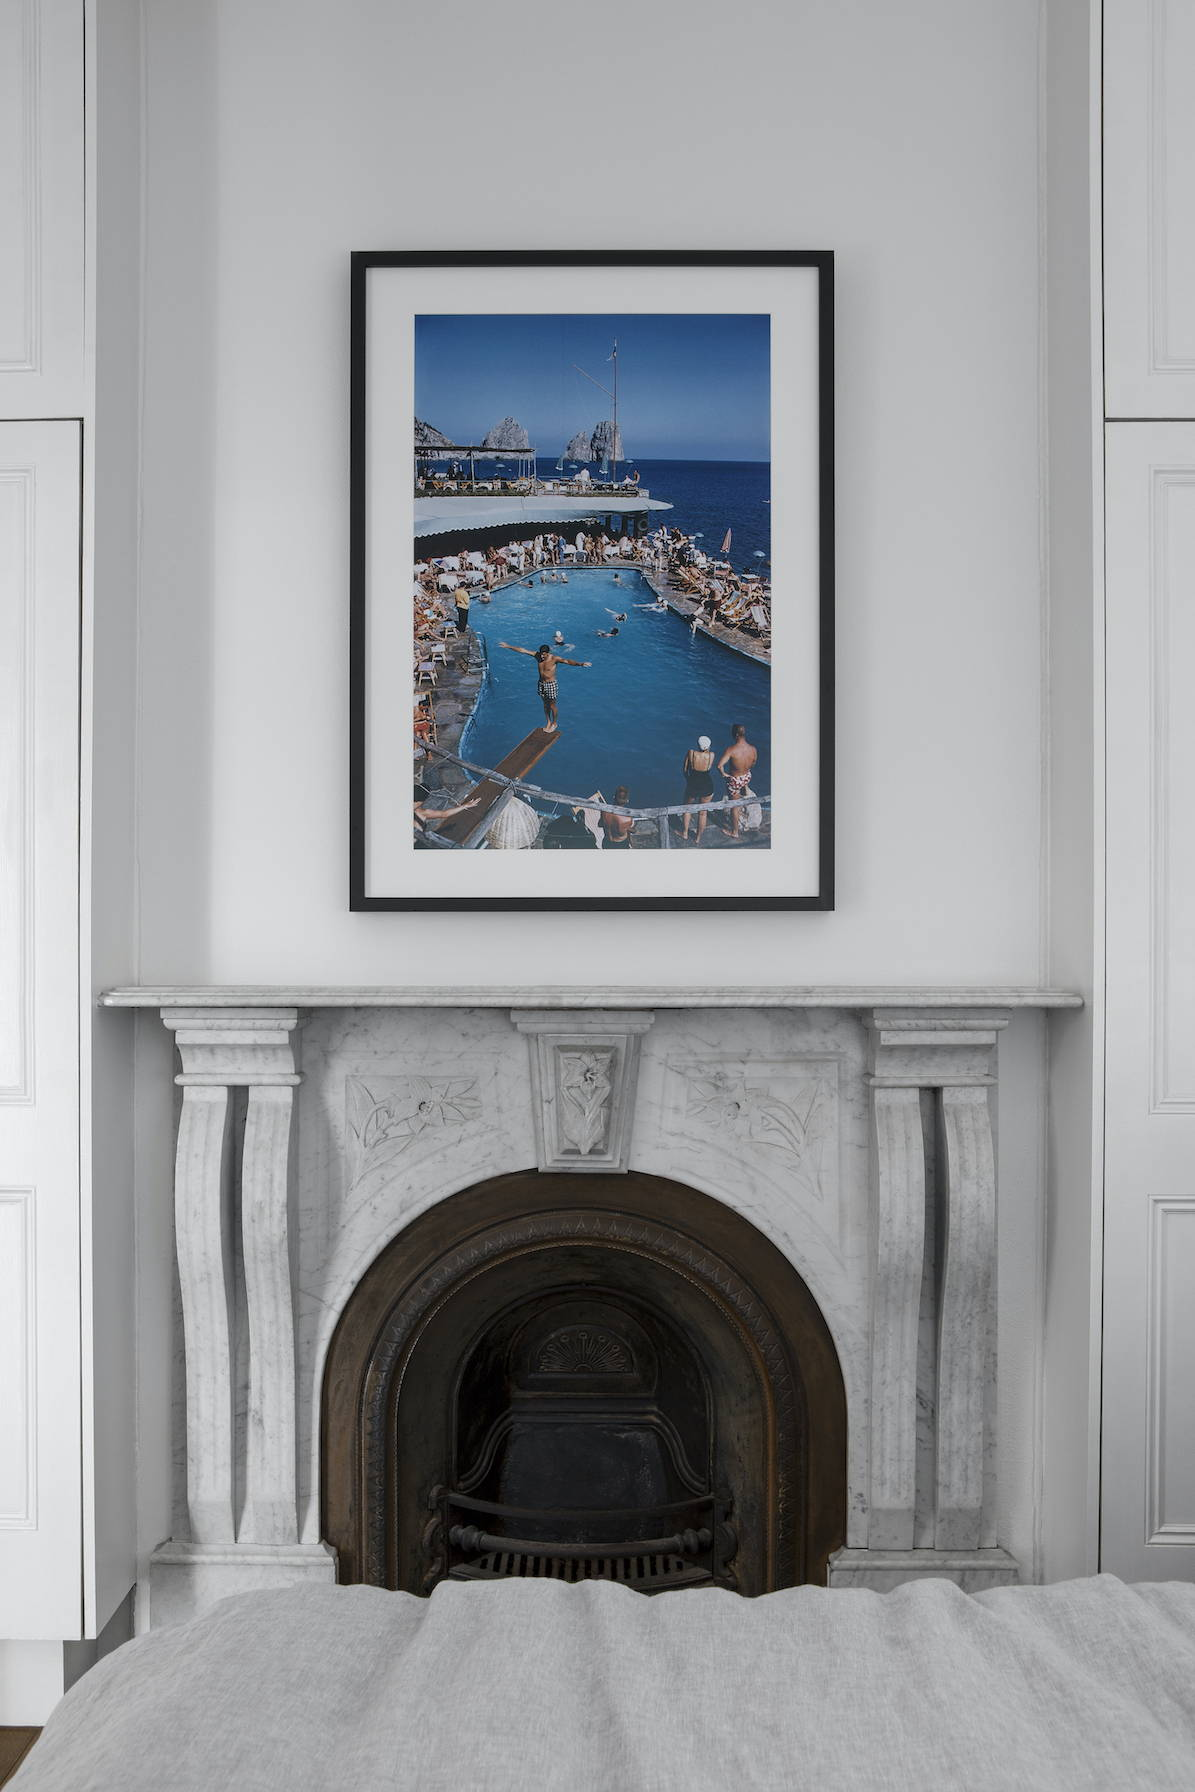 A bright blue ocean and pool scene captured by vintage photographer Slim Aarons, framed in black in a bedroom